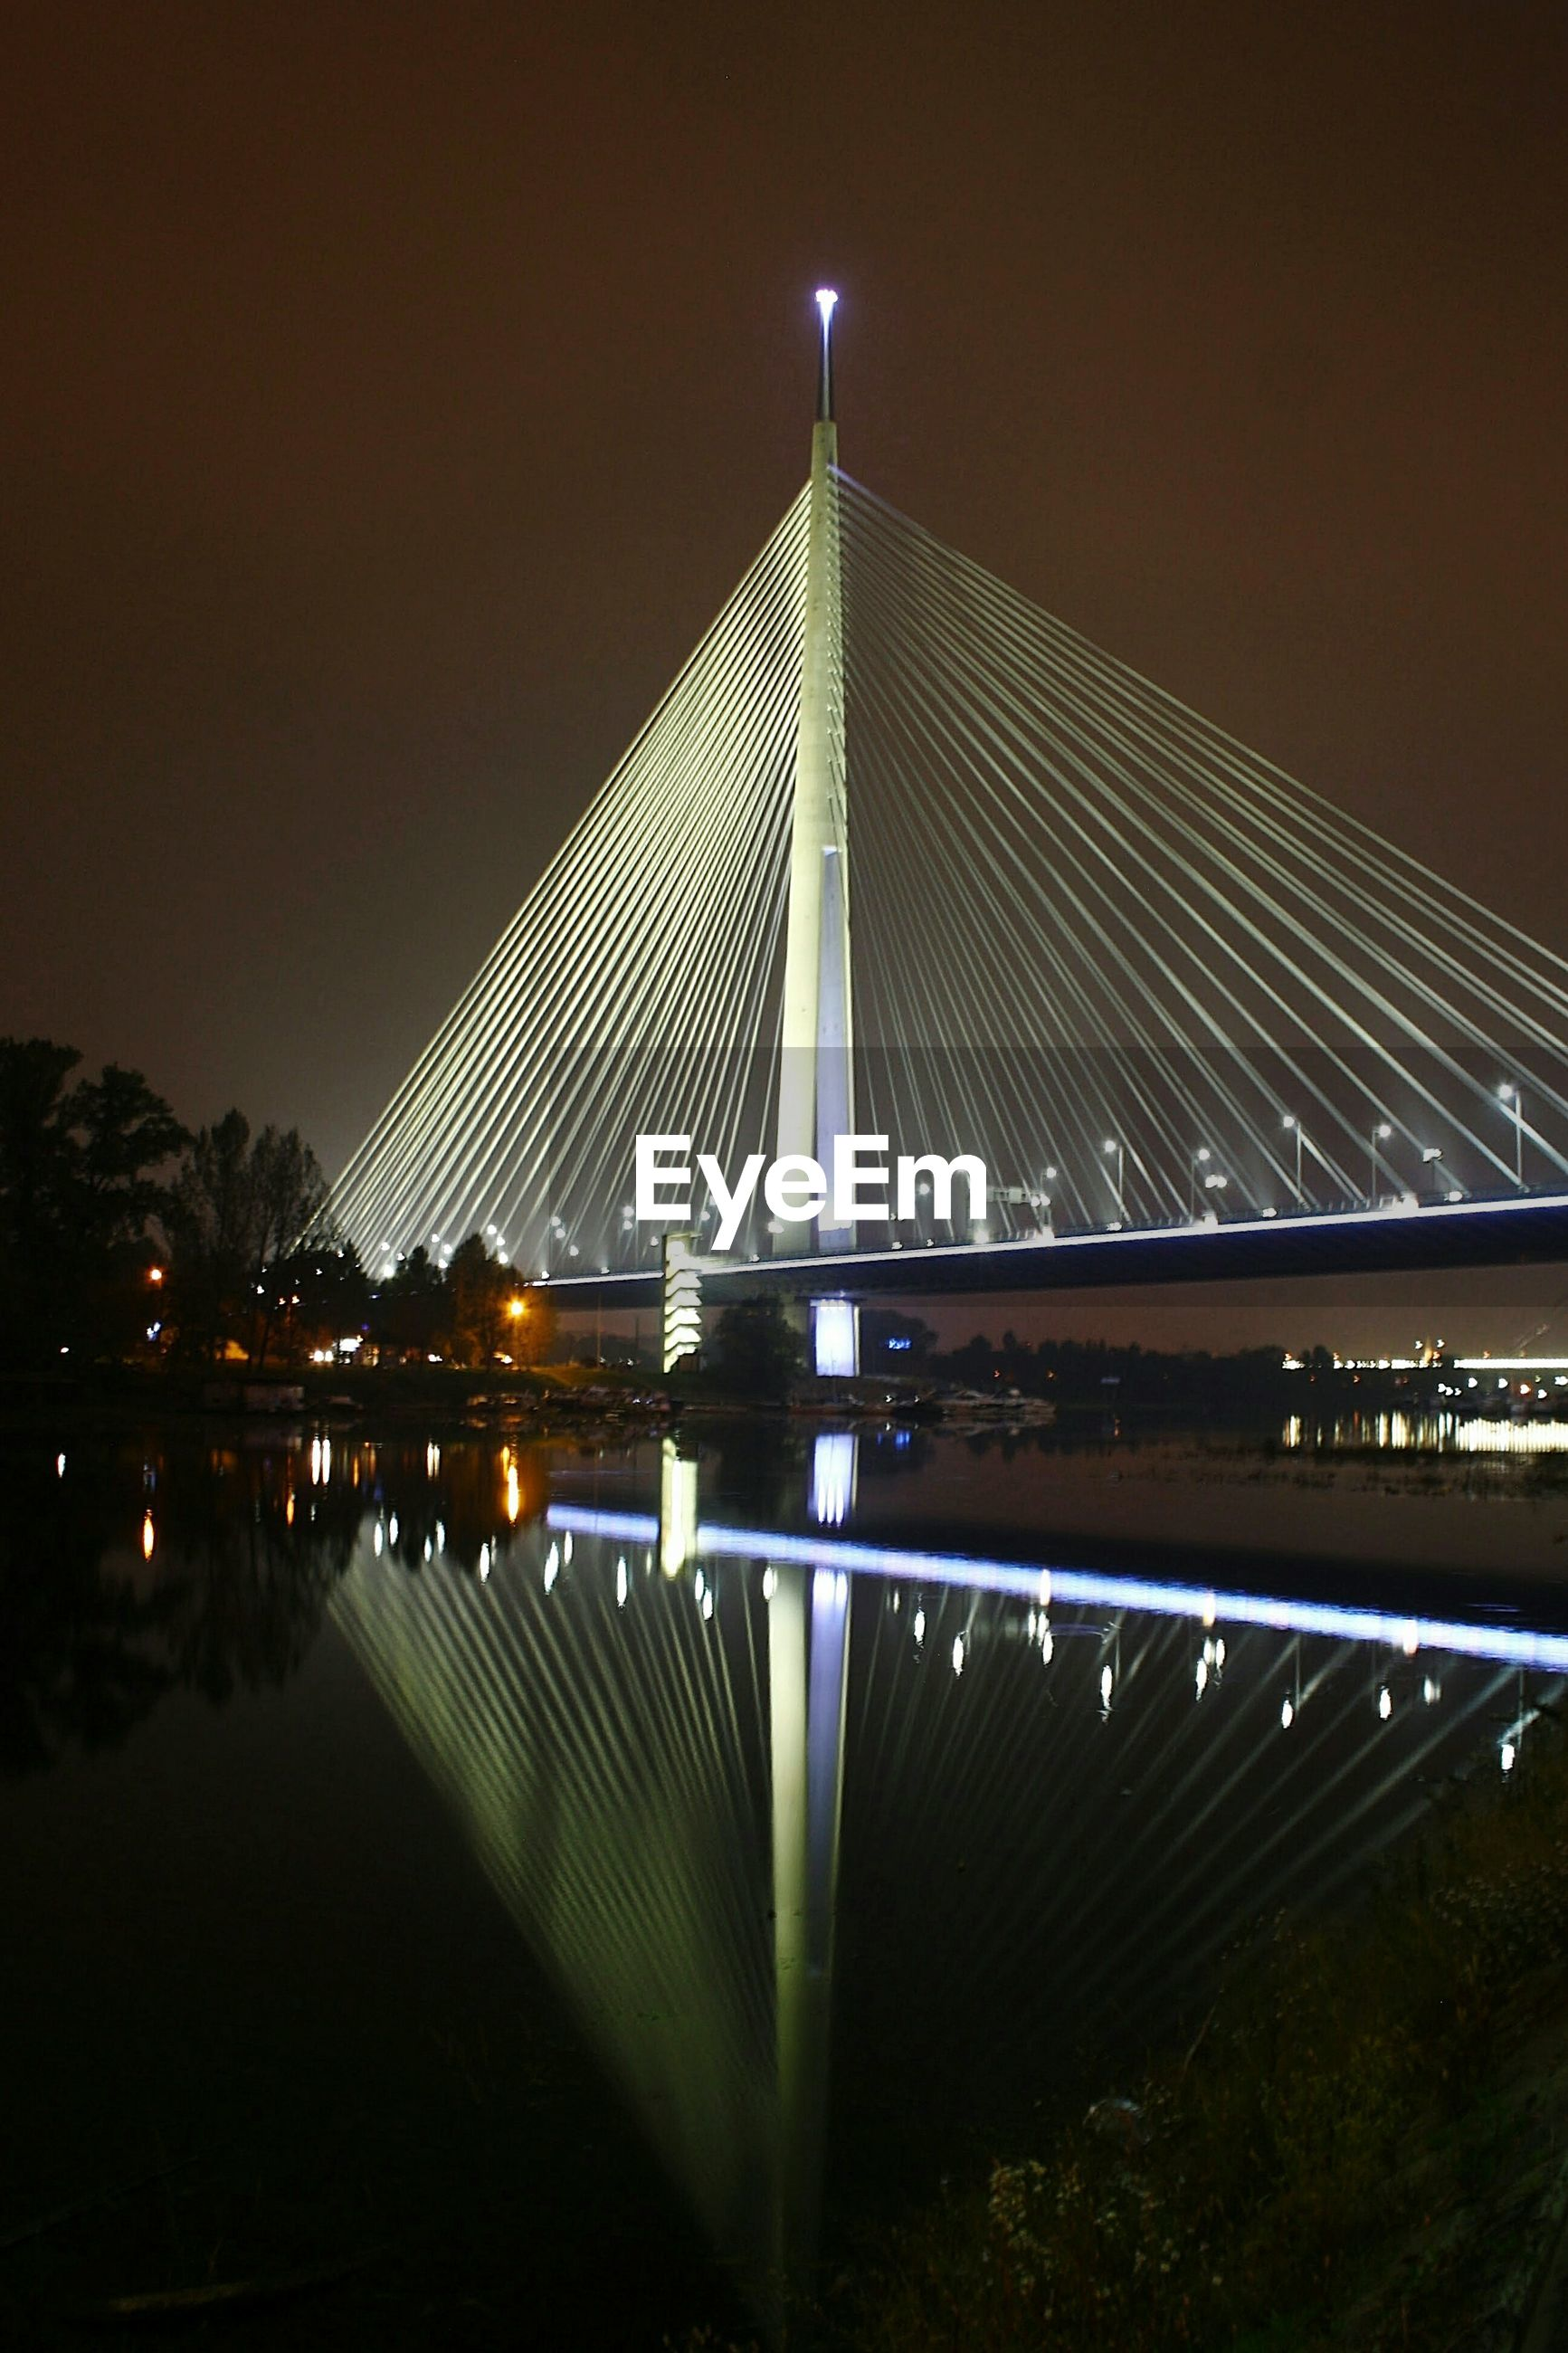 connection, bridge - man made structure, built structure, night, architecture, illuminated, engineering, bridge, suspension bridge, river, sky, low angle view, long, clear sky, reflection, water, tree, no people, dusk, outdoors